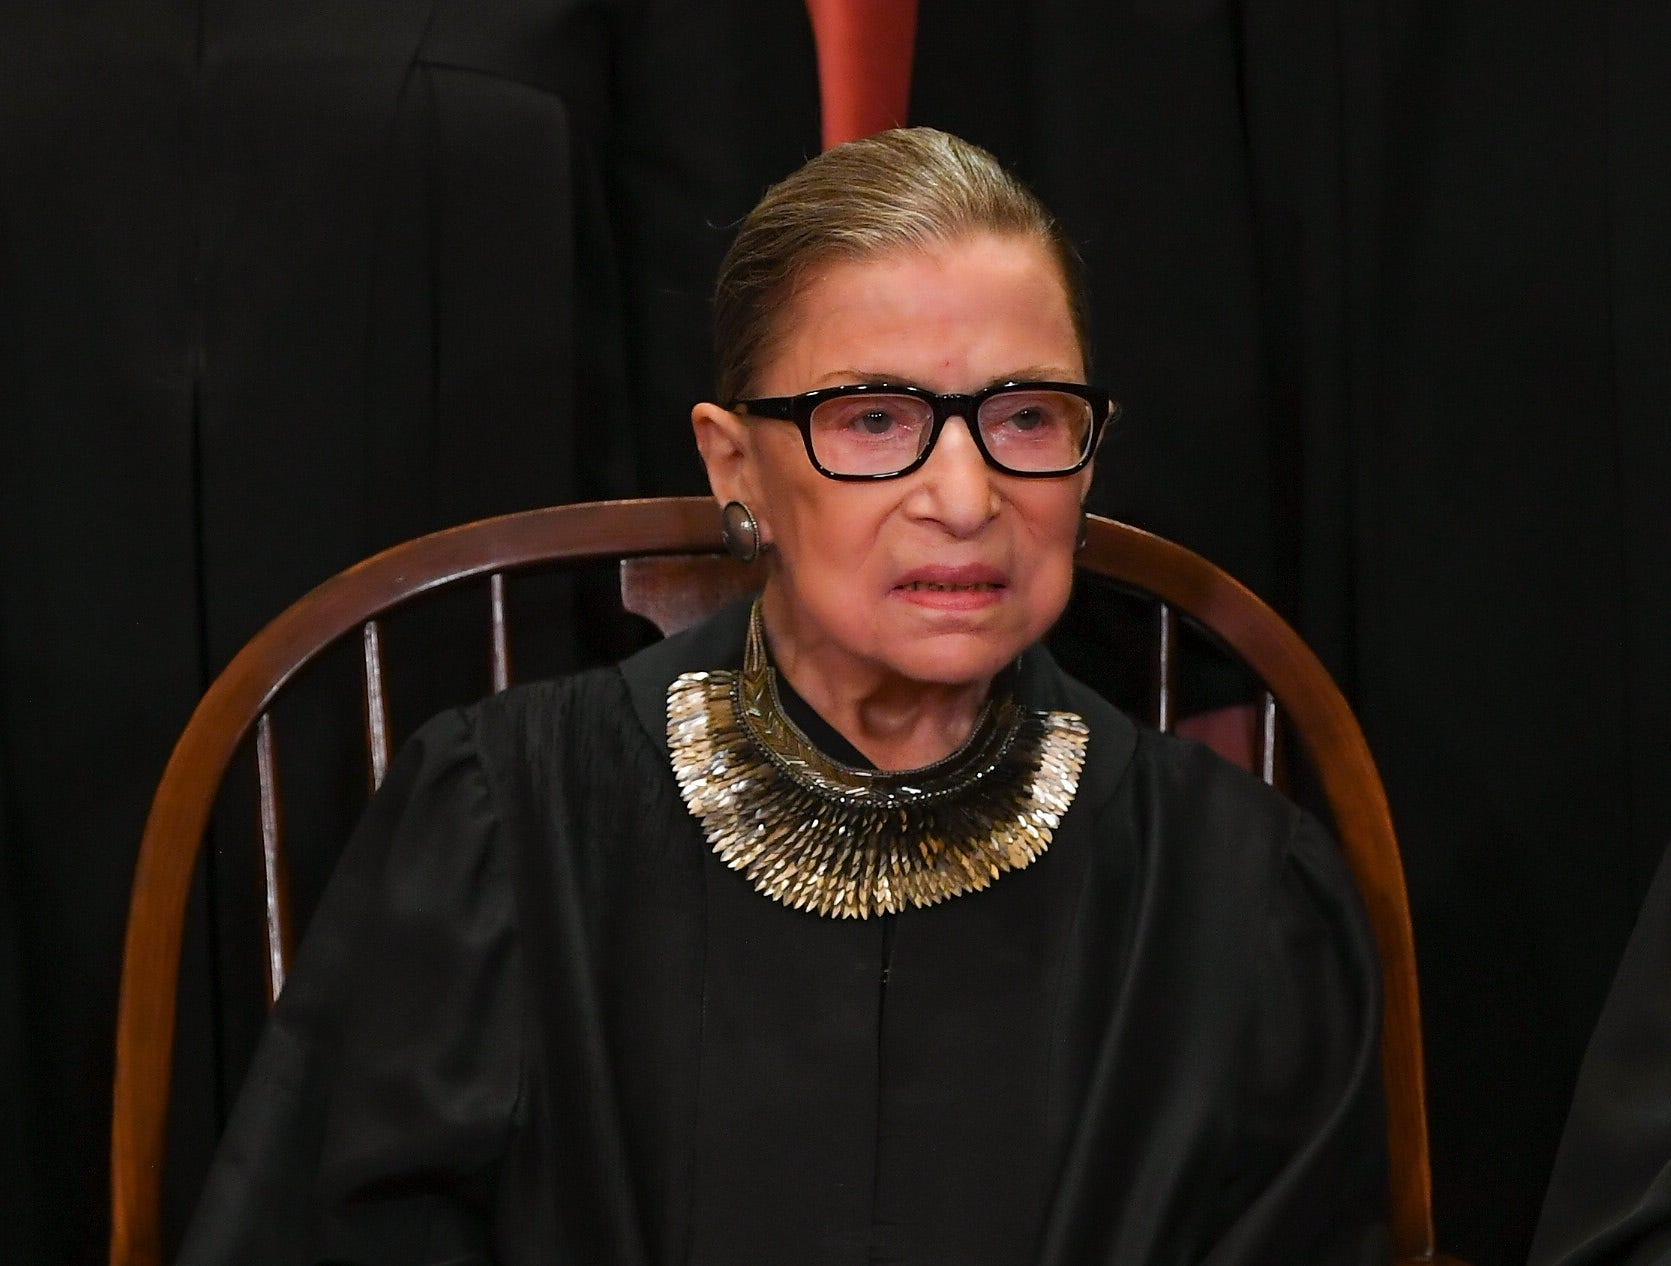 She's back: Justice Ruth Bader Ginsburg returns to Supreme Court following cancer surgery